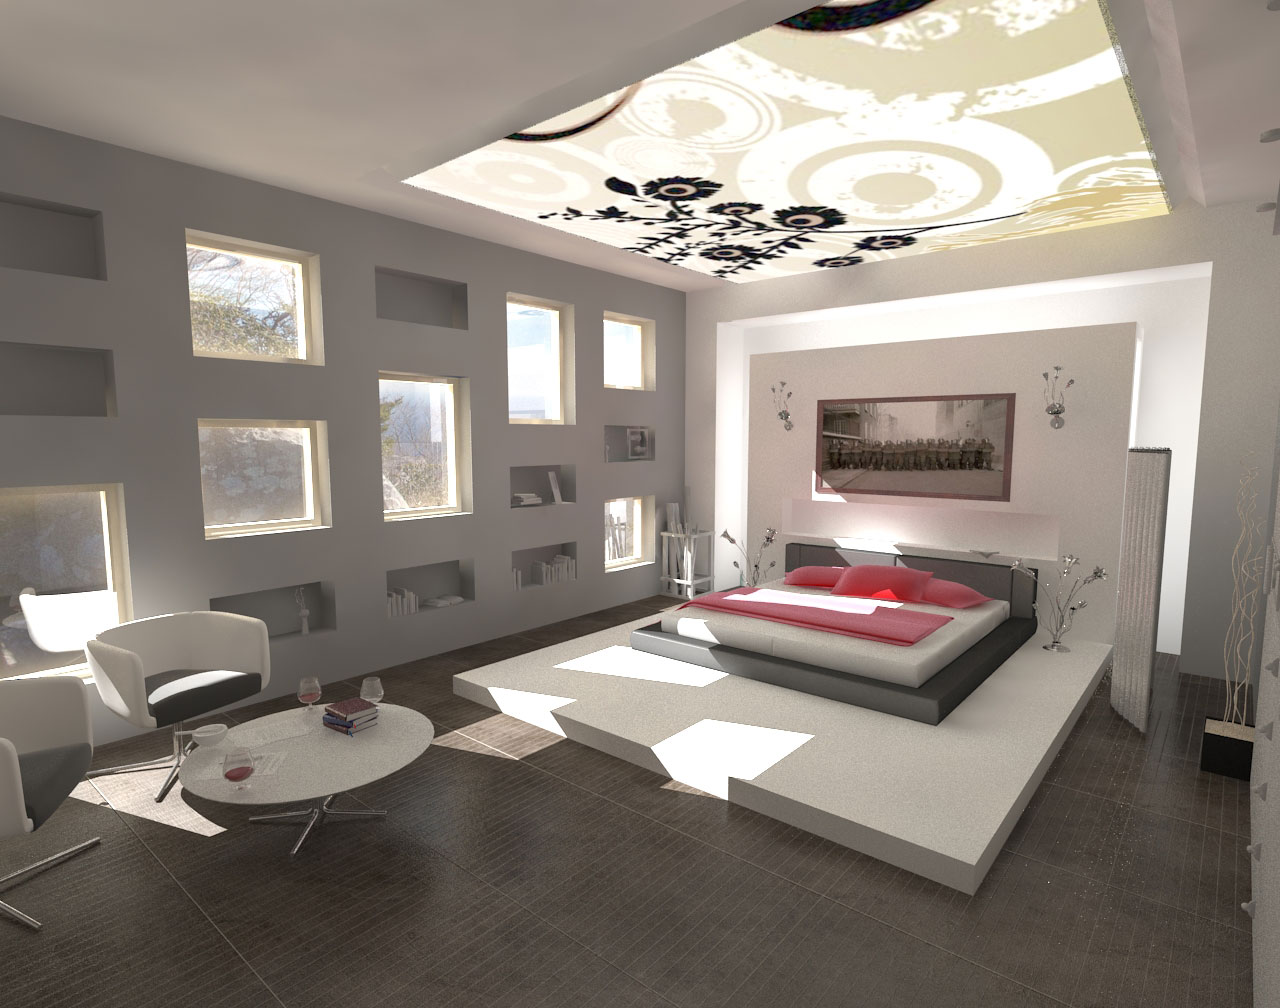 Decorations minimalist design modern bedroom interior for Minimalist bedroom ideas